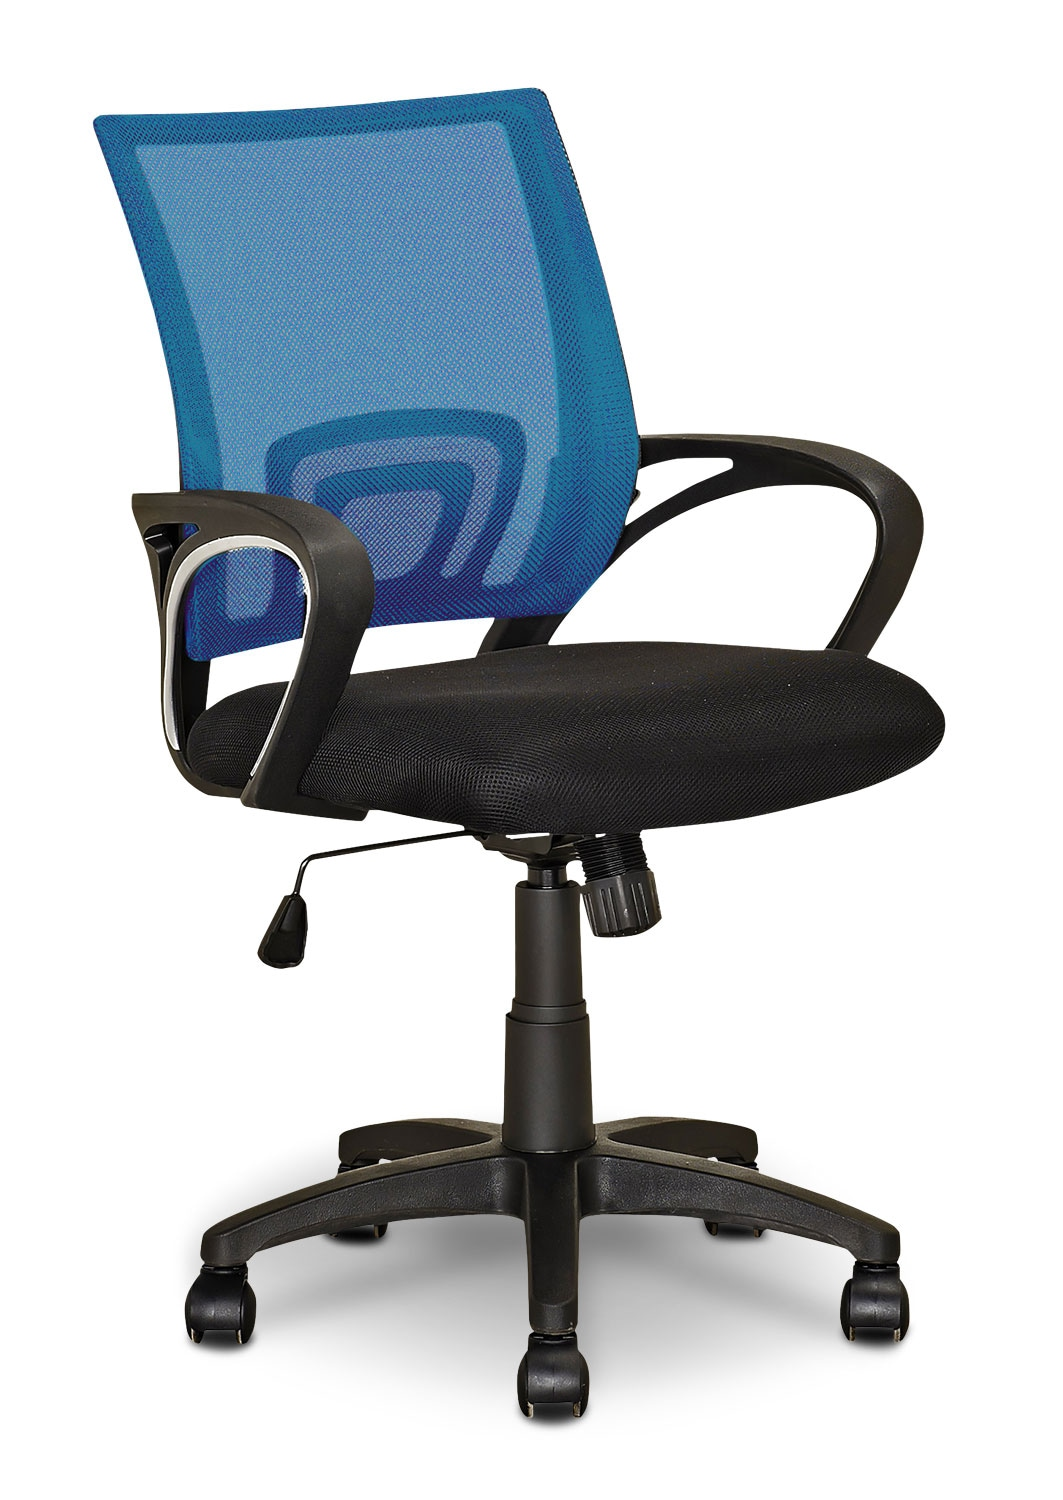 Loft Mesh Office Chair – Light Blue